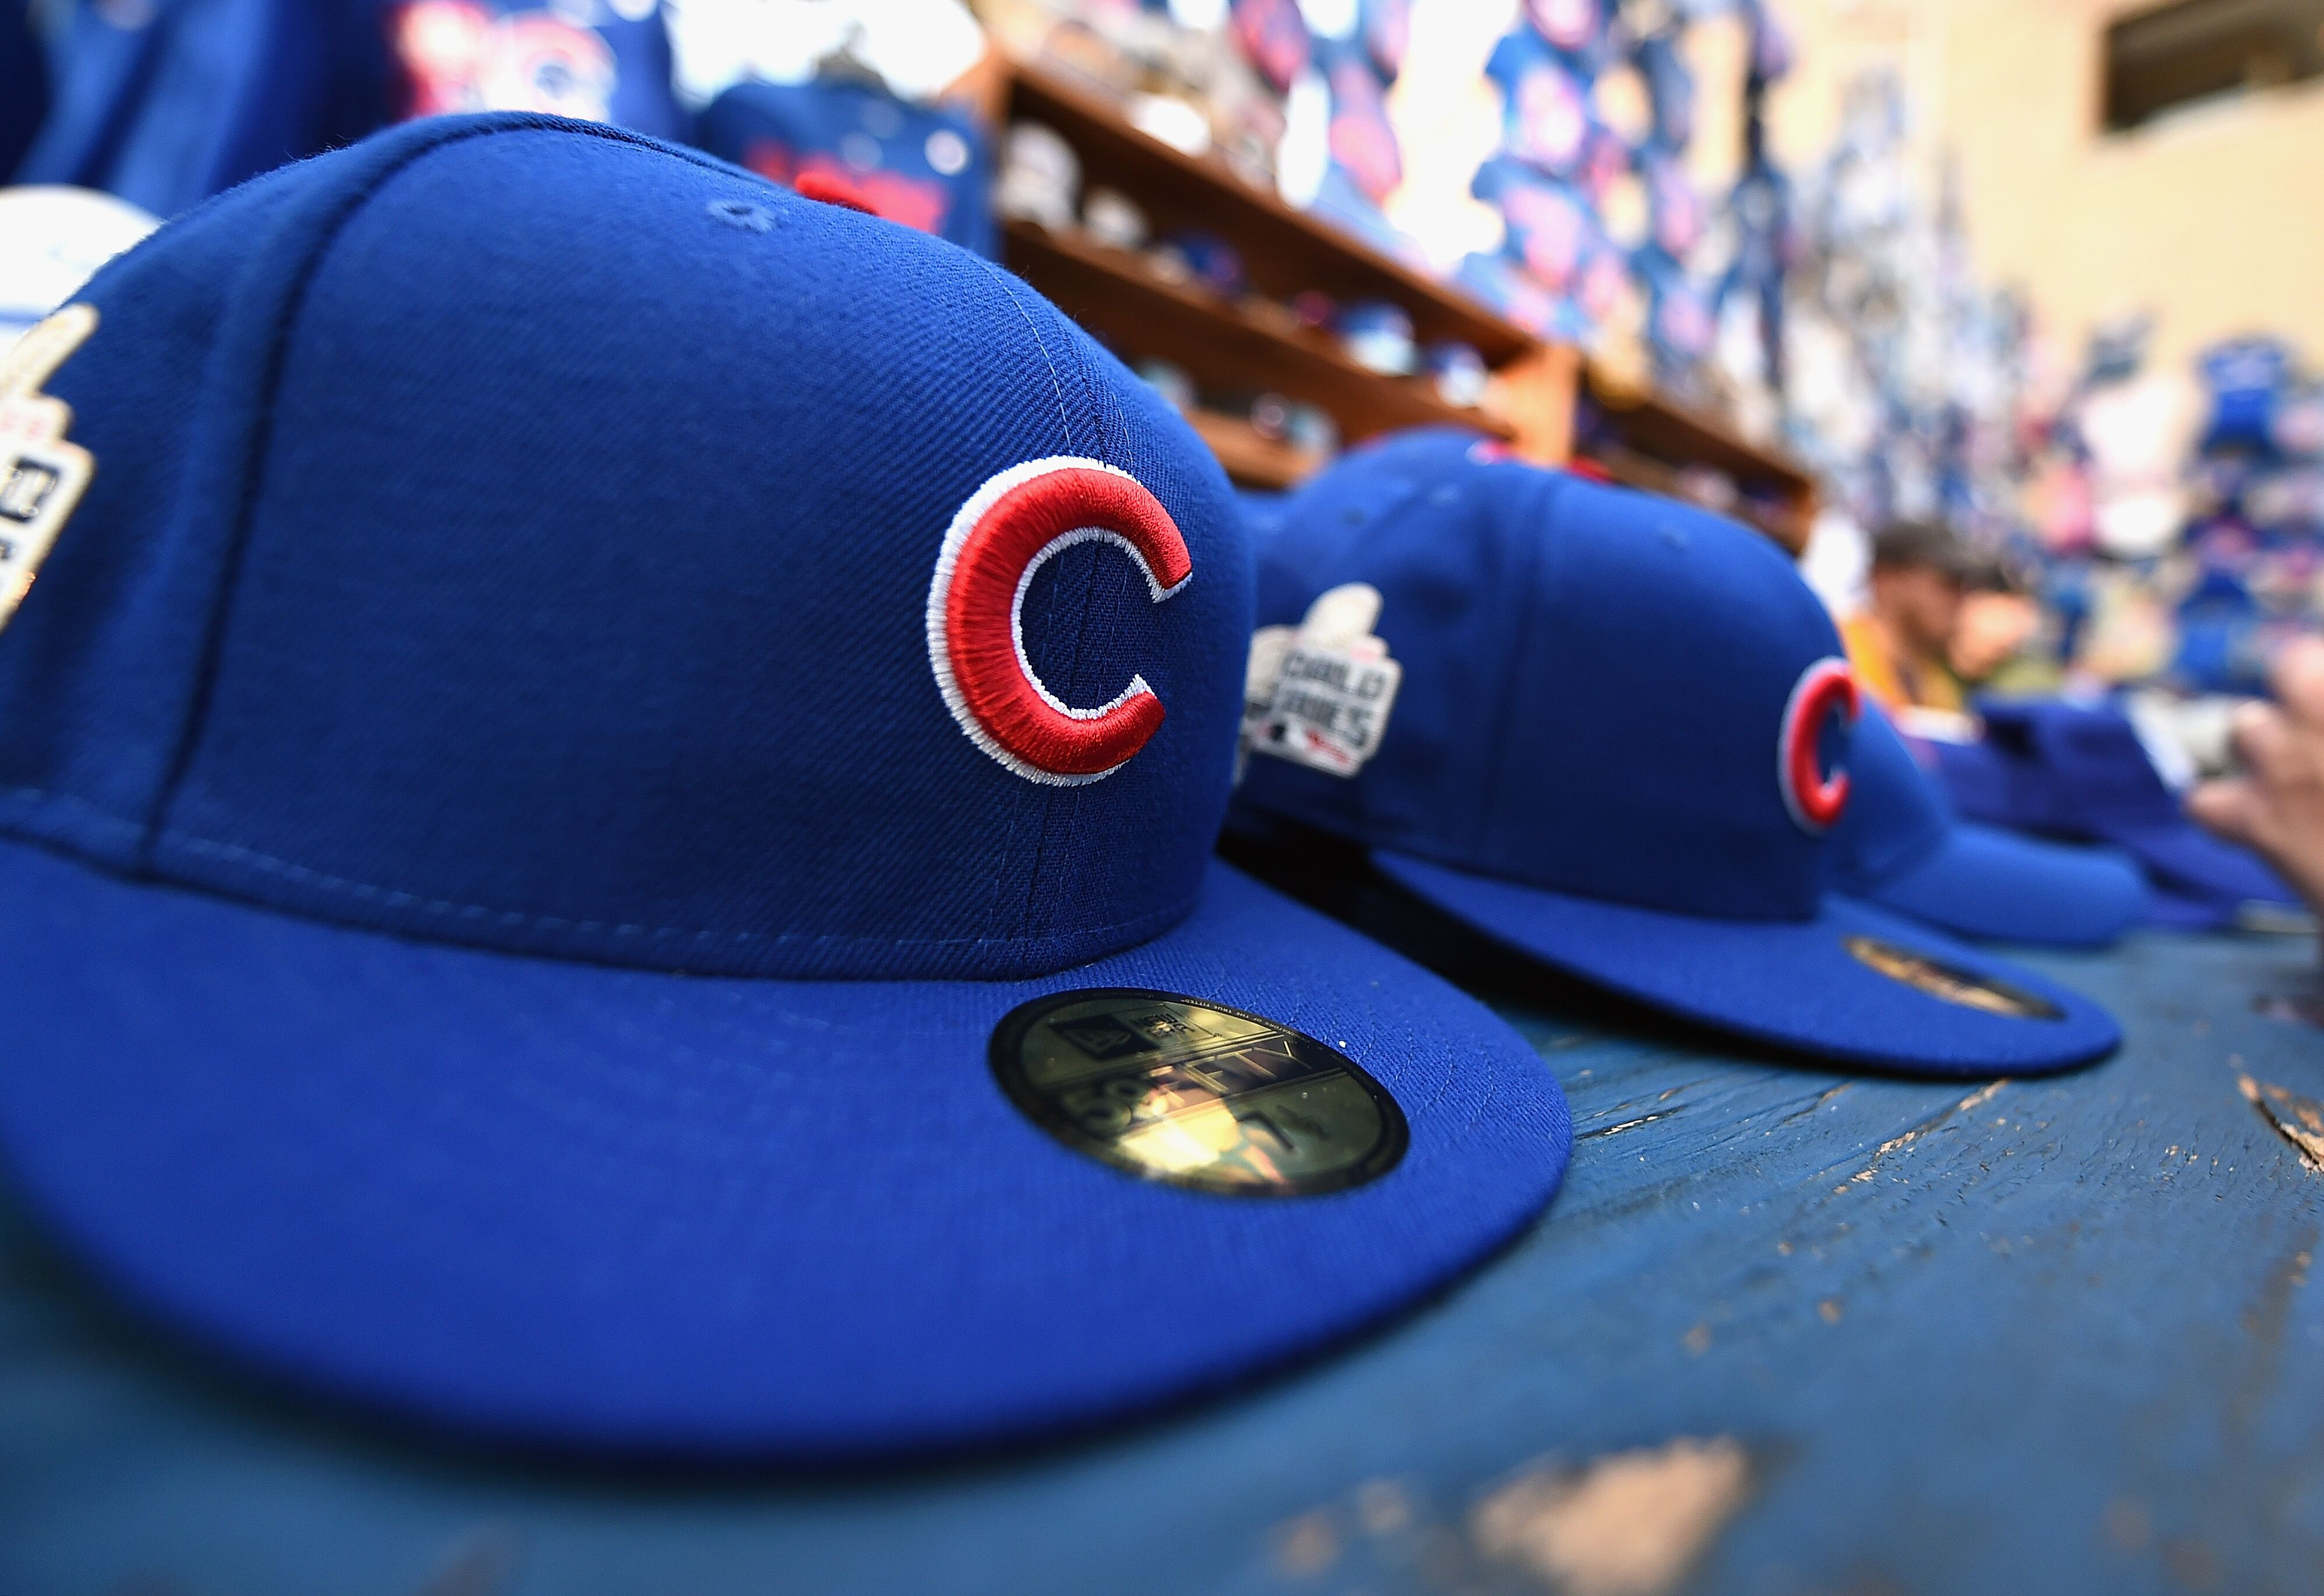 Chicago Cubs may have a lethal bullpen weapon in Dillon Maples